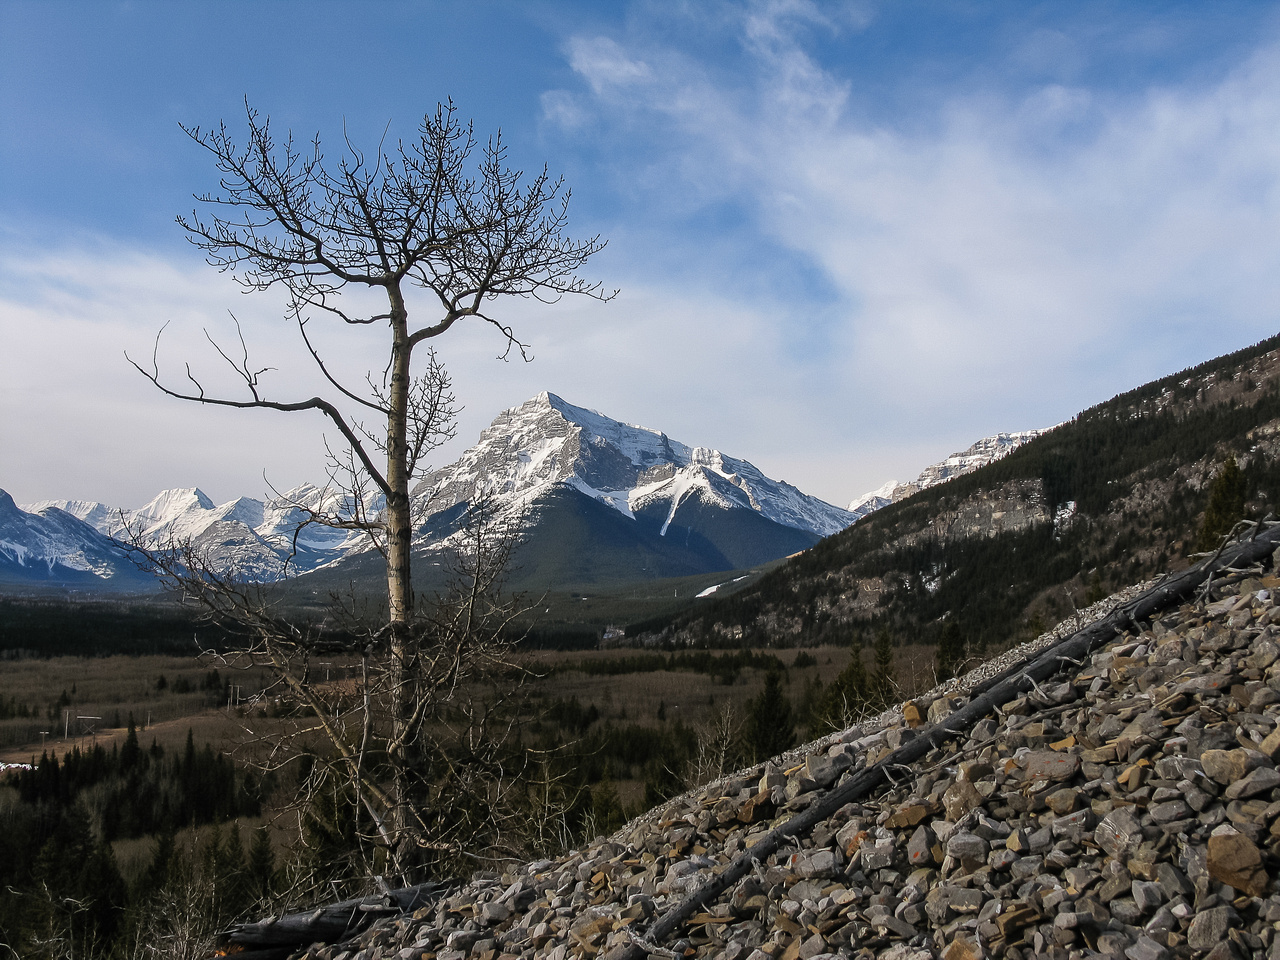 A lonely tree makes a nice foreground subject as I start up the long gully on Lorette.